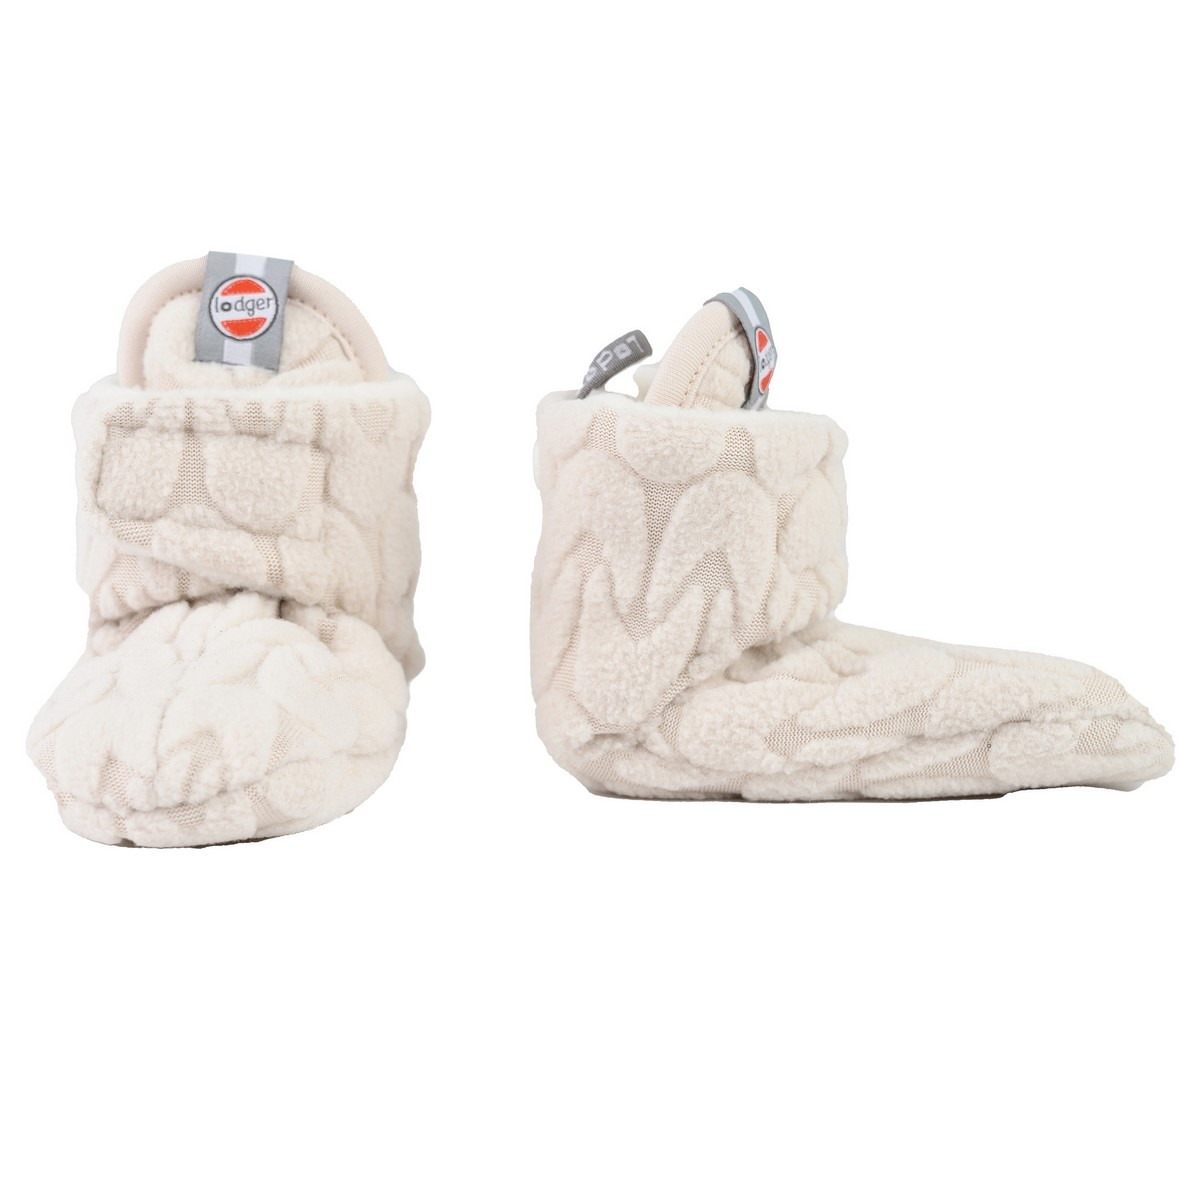 LODGER Slipper Fleece Empire Birch 6 - 12 měsíců